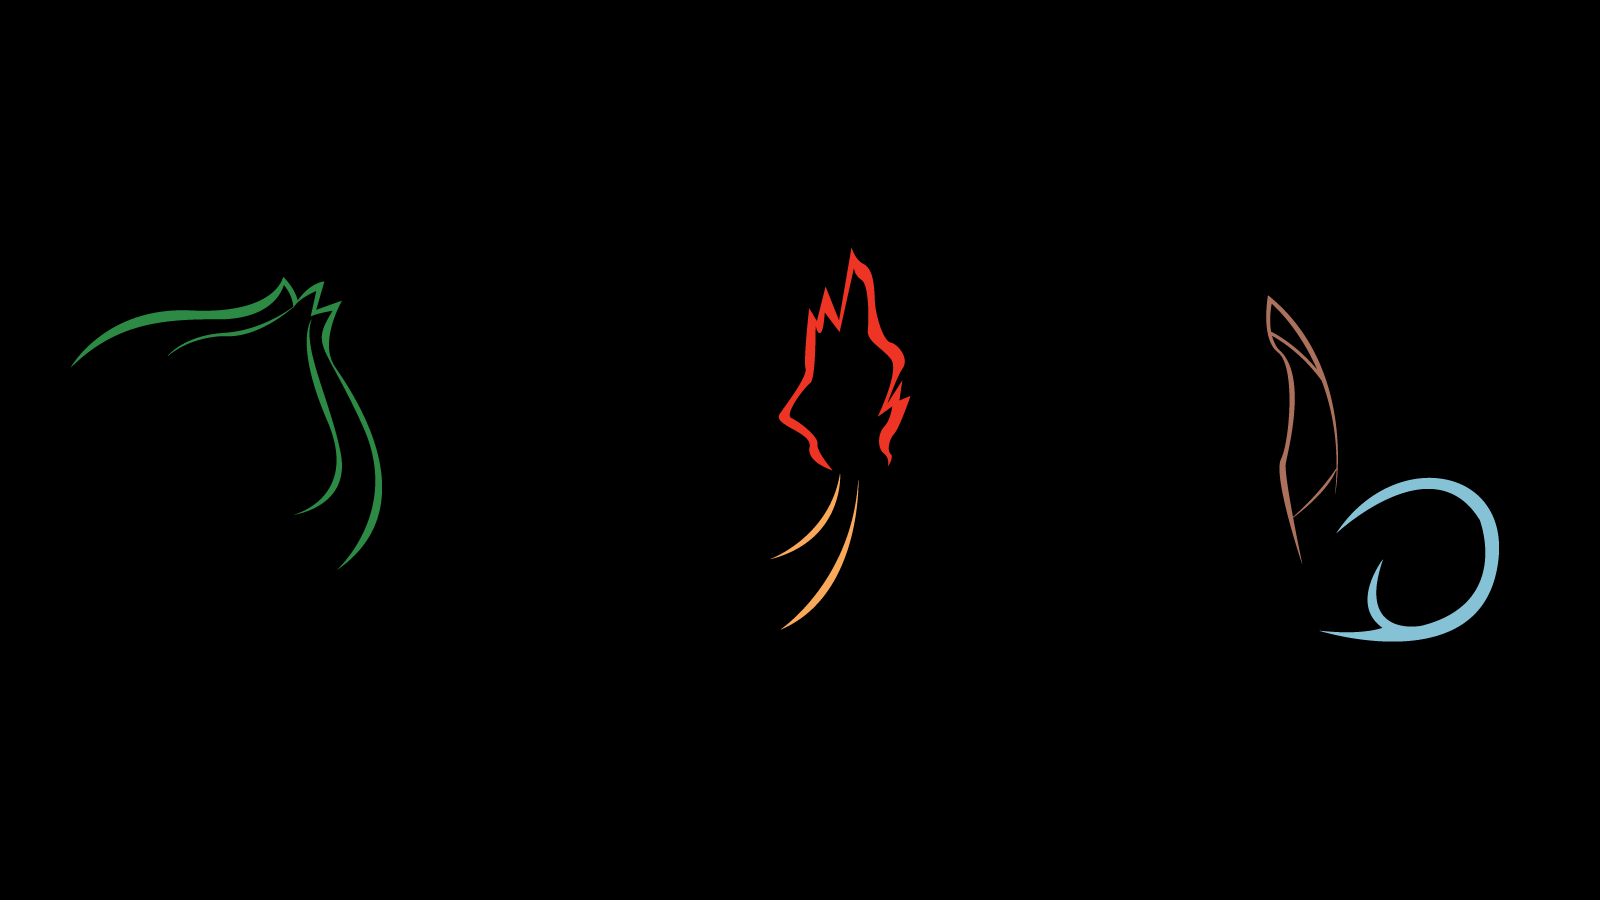 Wallpapers For Bulbasaur Charmander Squirtle Wallpaper Minimalist Wallpaper Pokemon Wallpaper